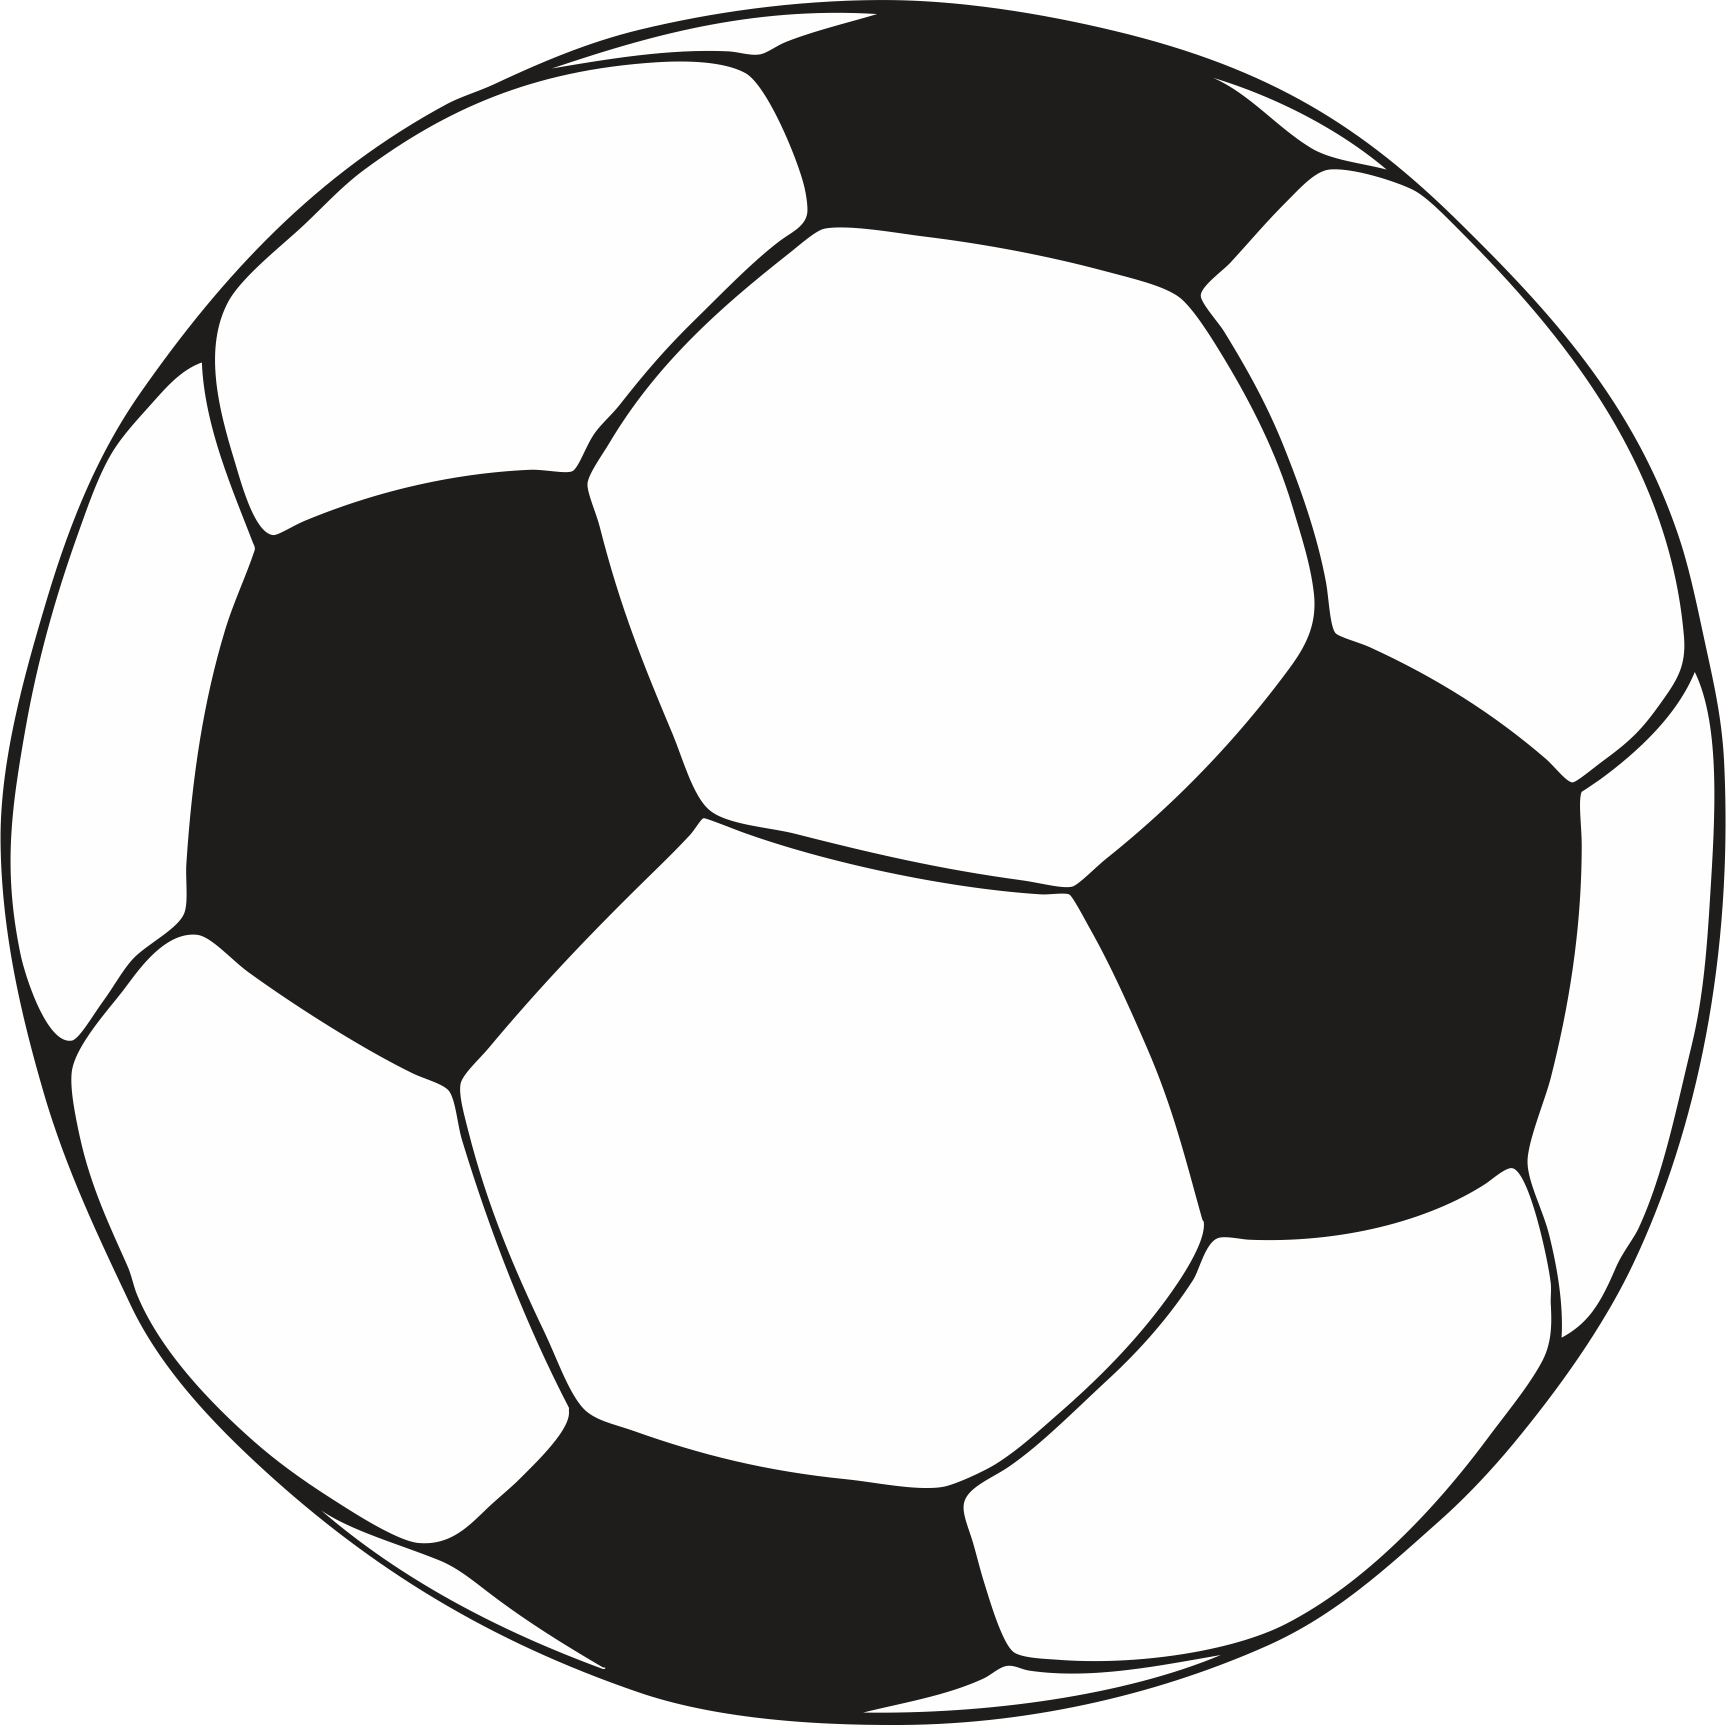 Sizzling image pertaining to printable soccer balls